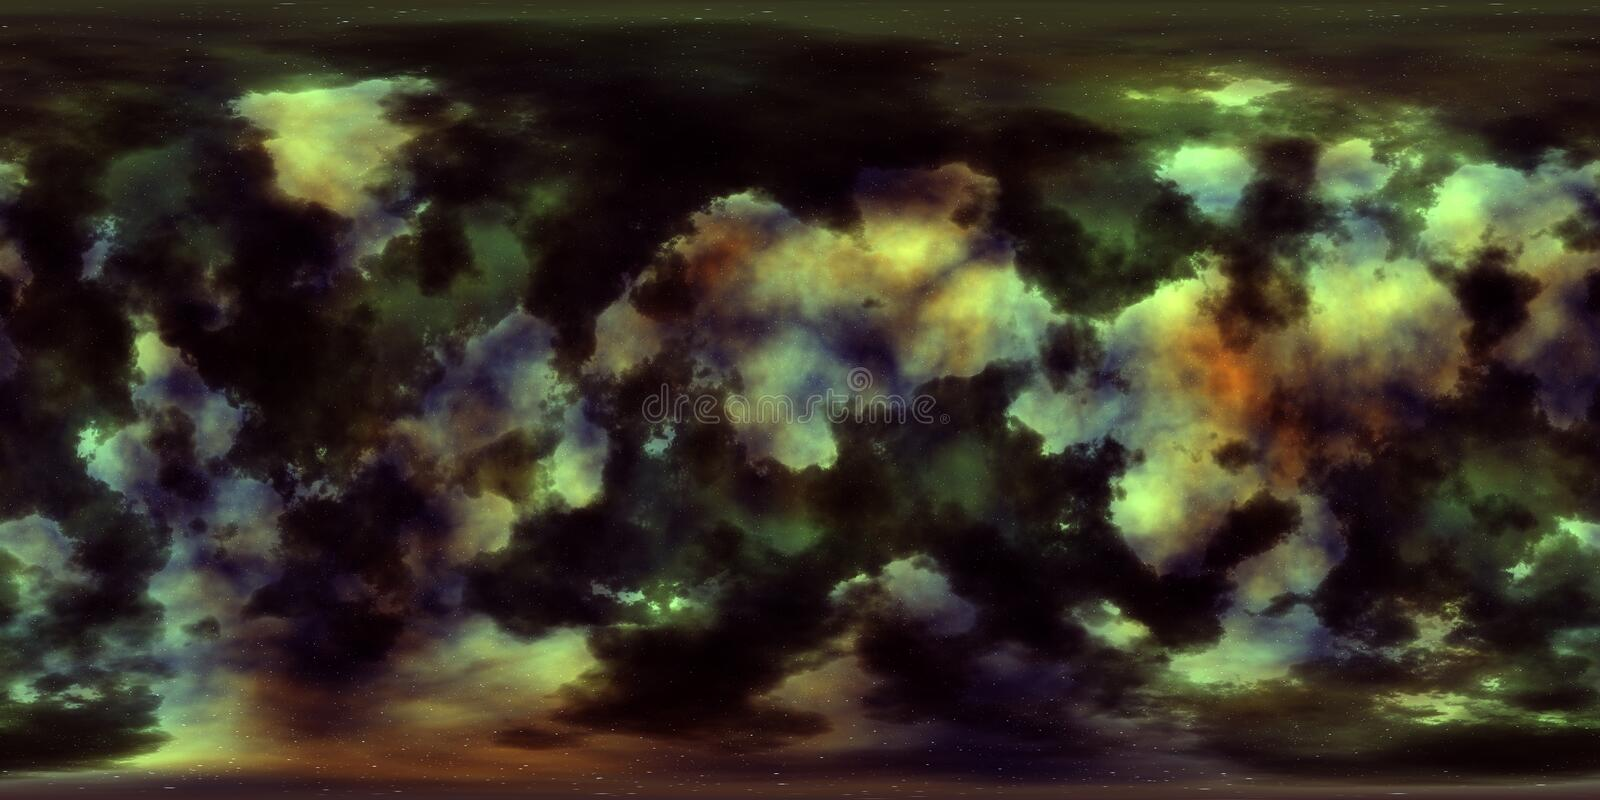 Nebula and Stars in Outer Space 360 Degree Environment Panorama royalty free illustration